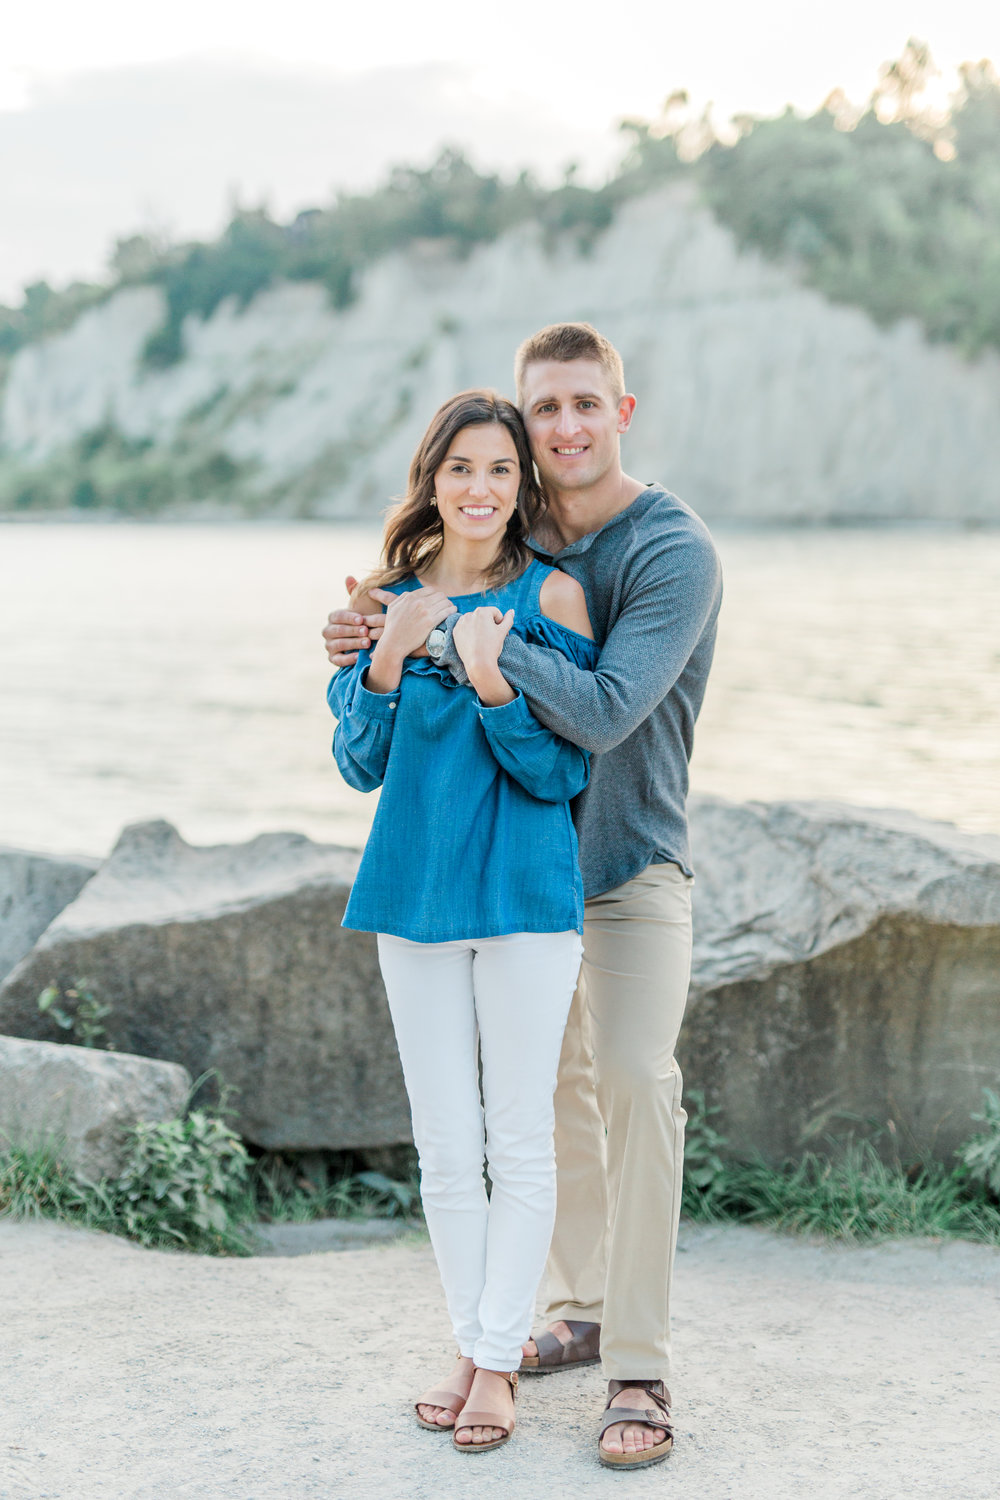 Danielle-Giroux-Amir-Golbazi-Genua-Family-Photography-Scarborough-Bluffs-9658.jpg